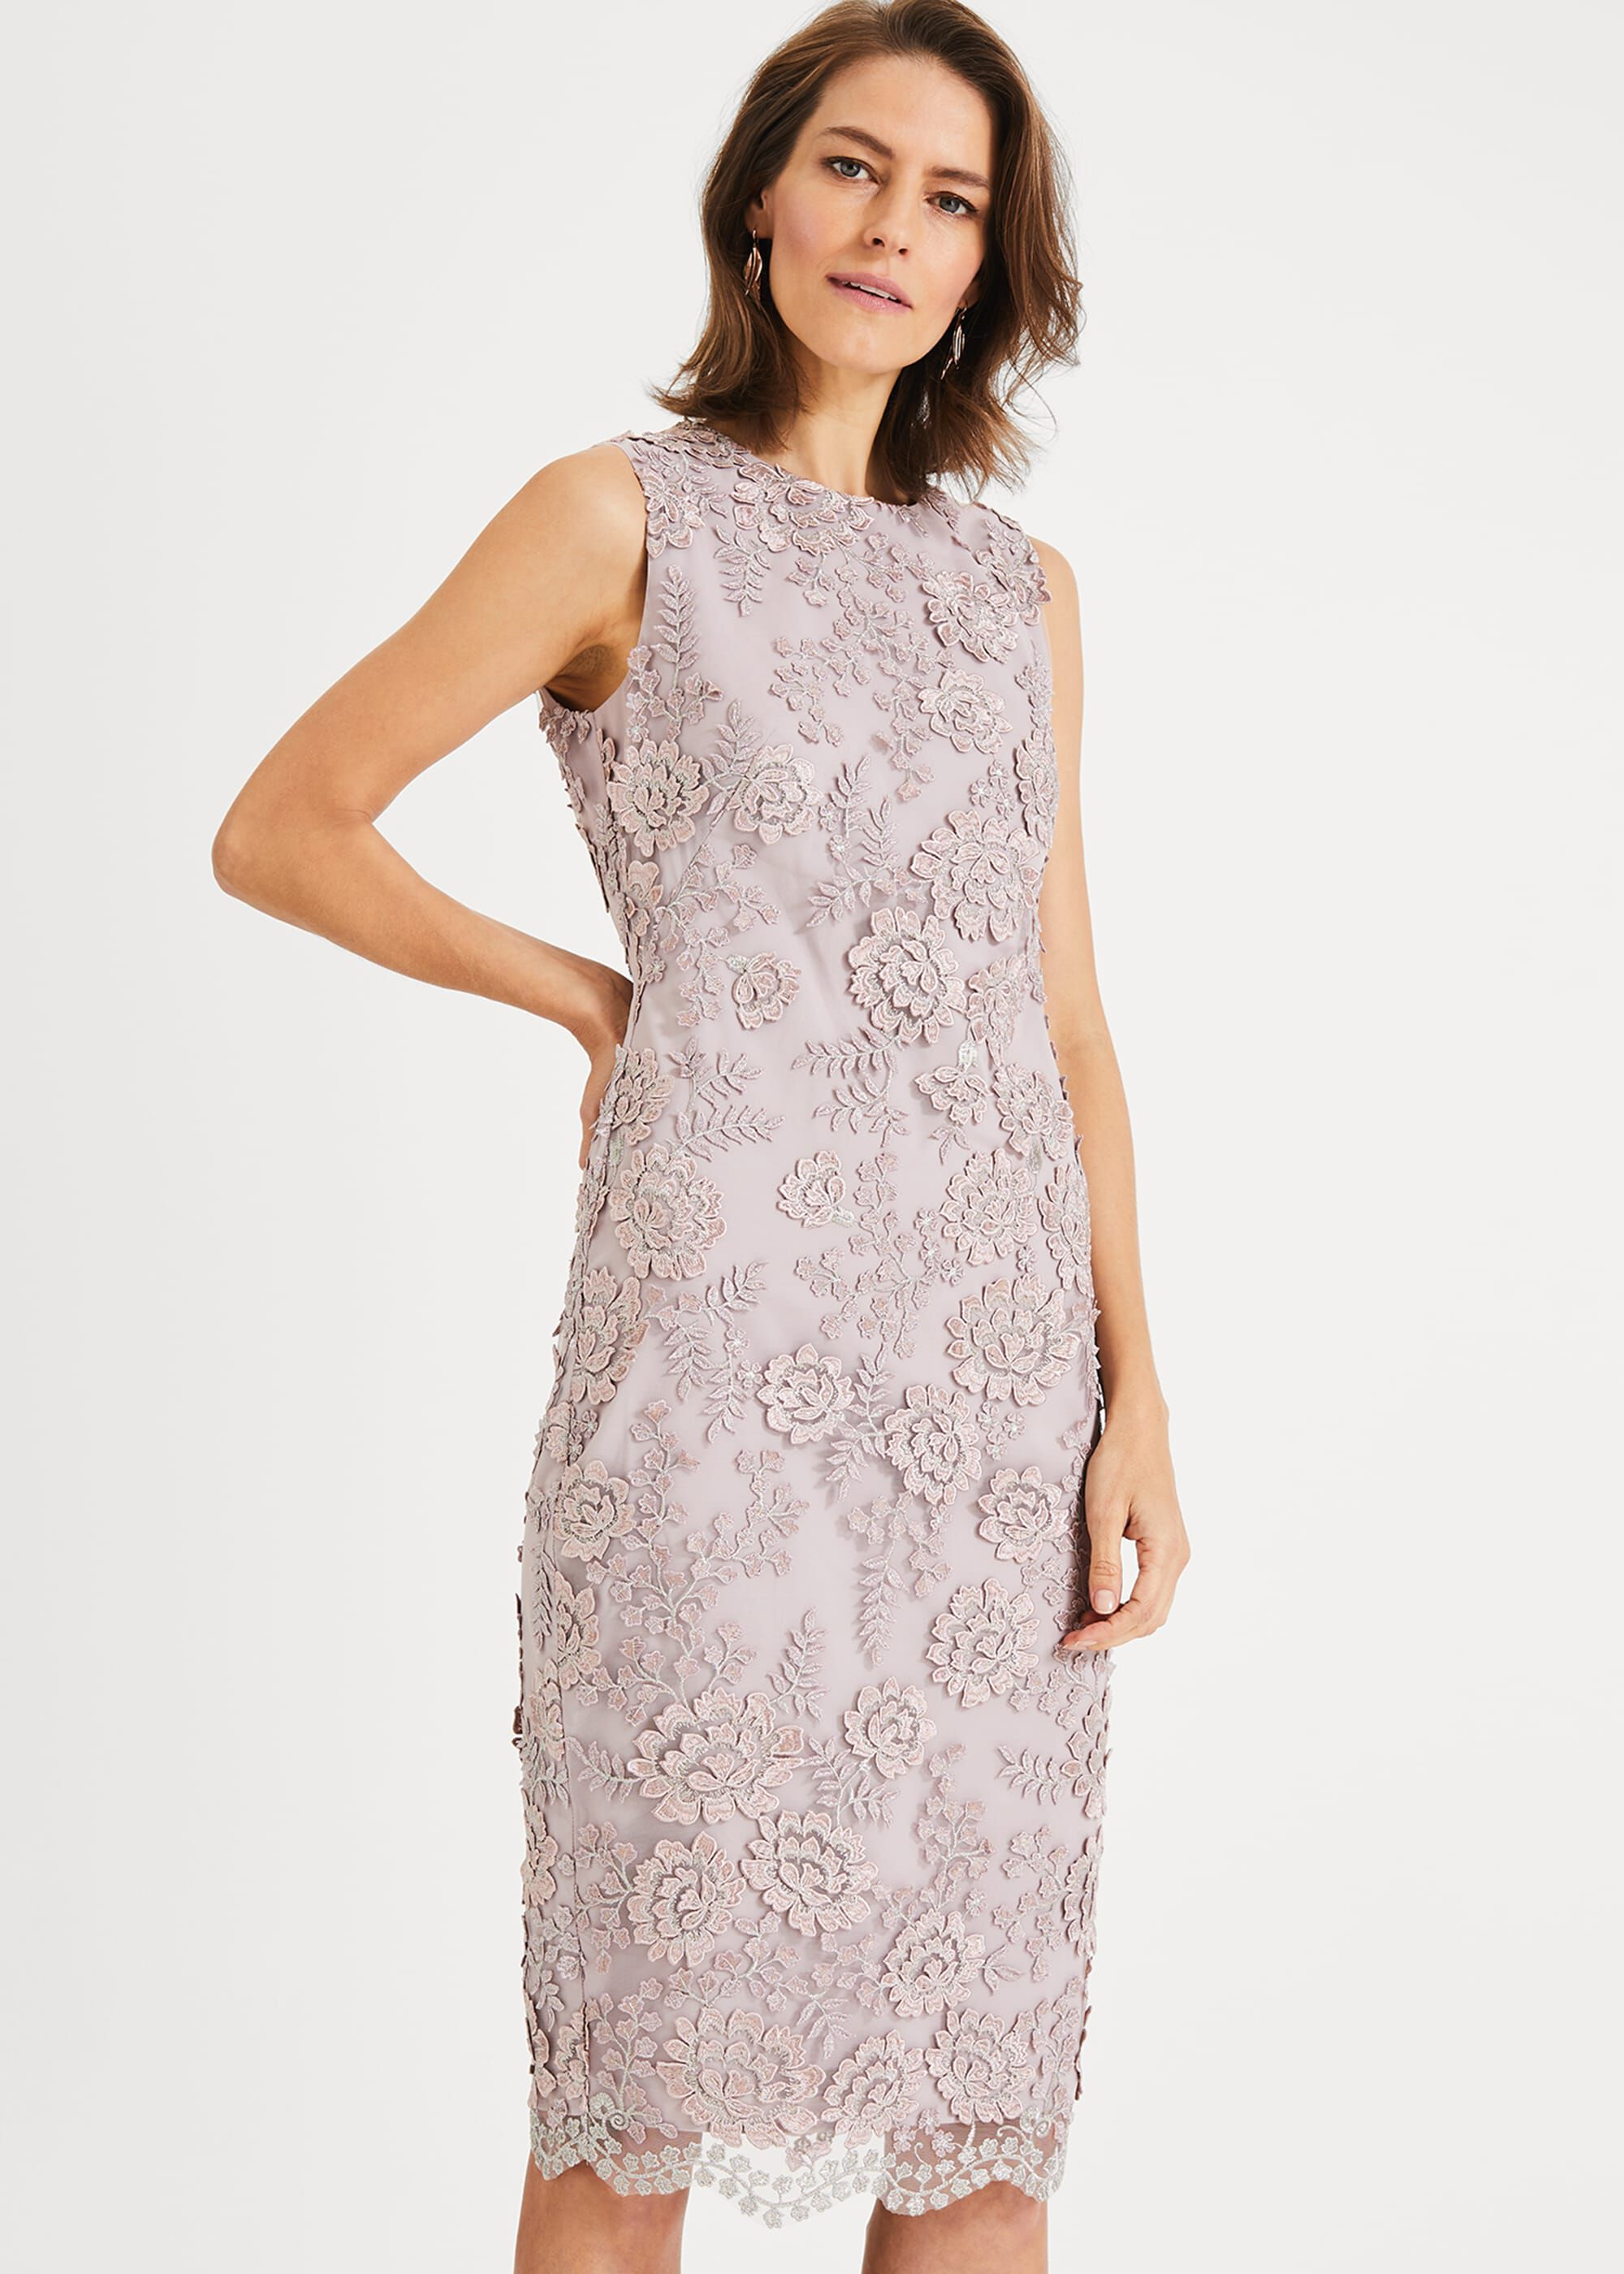 Phase Eight Teresa Metallic Lace Dress, Purple, Shift